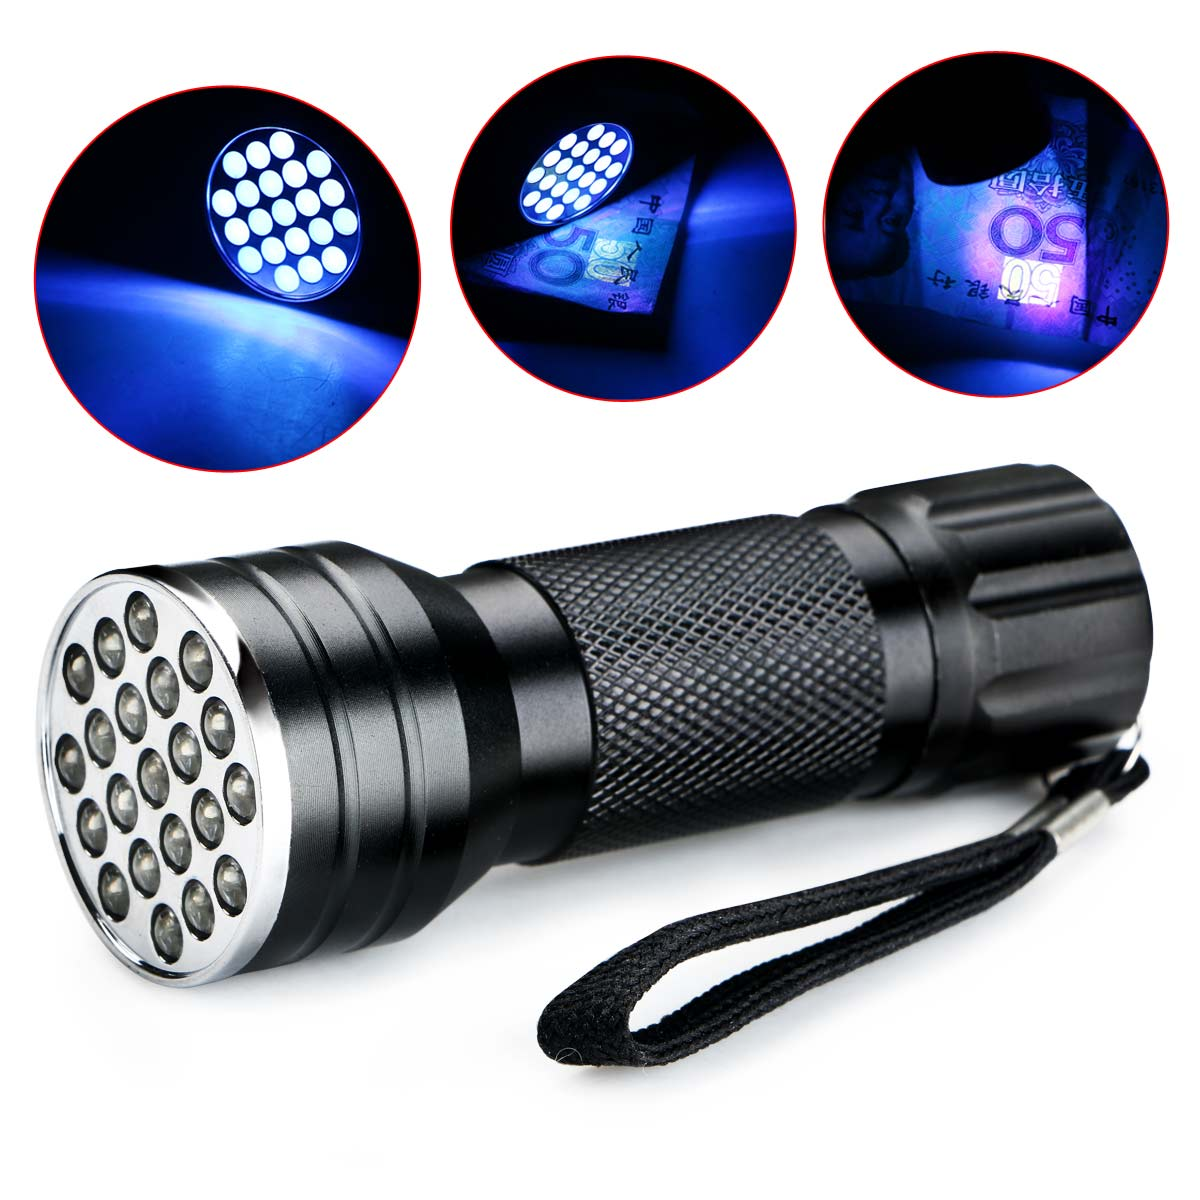 NEW Aluminium Invisible Blacklight Ink Marker 21 LED UV Ultra Violet 395nm Flashlight Torch Light Lamp For 3xAAA Batteries